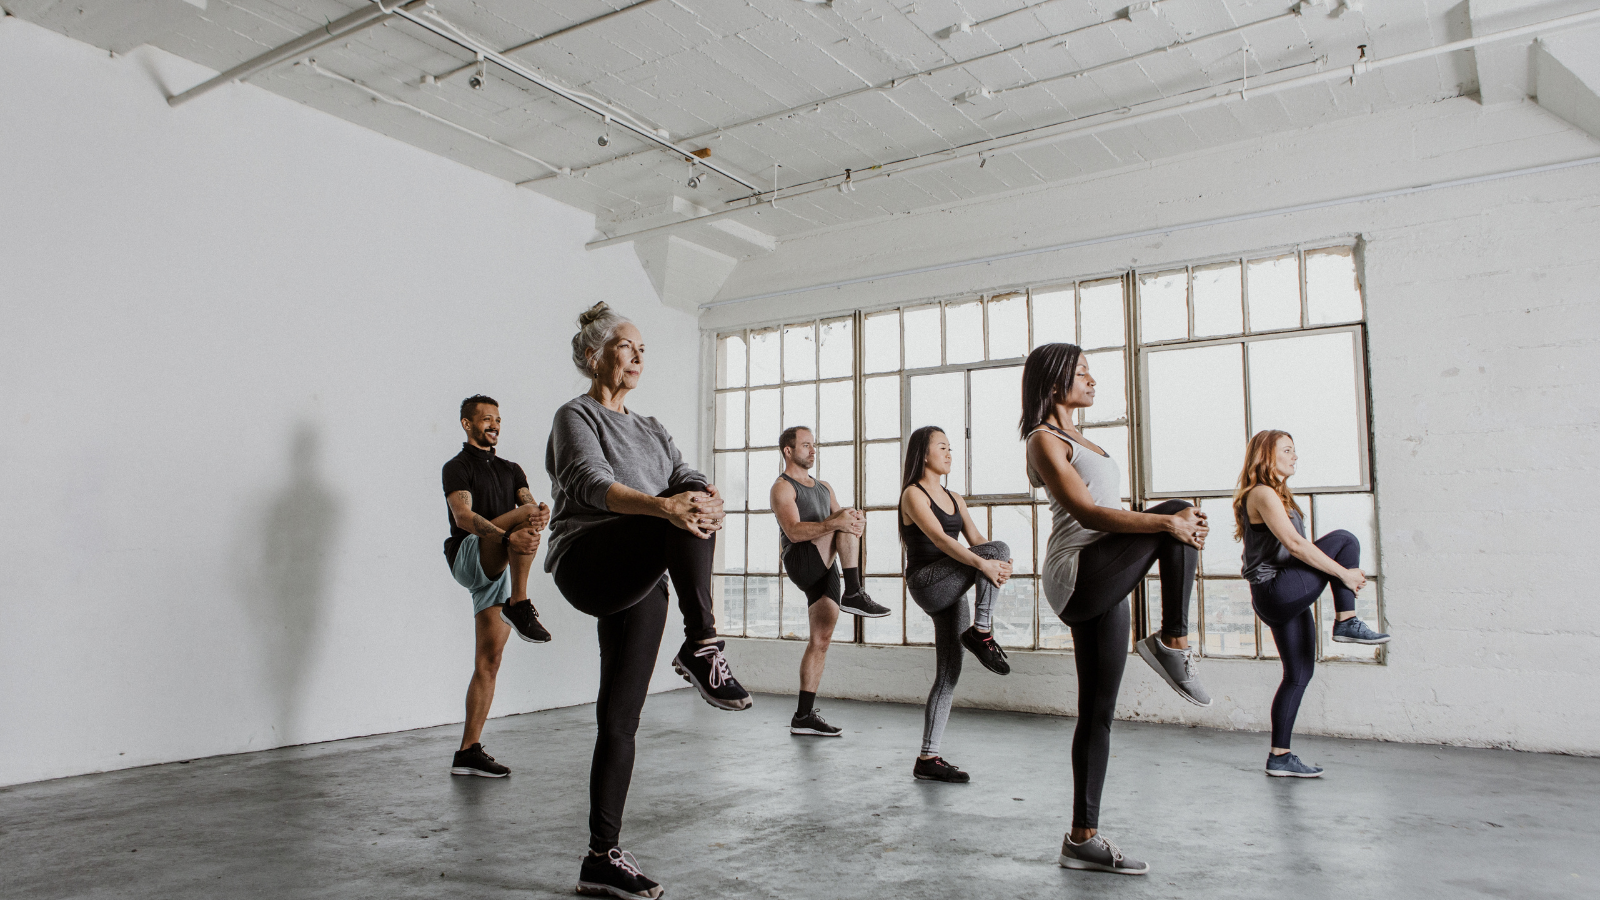 Diverse people stretching their knees and practicing balance in a yoga class